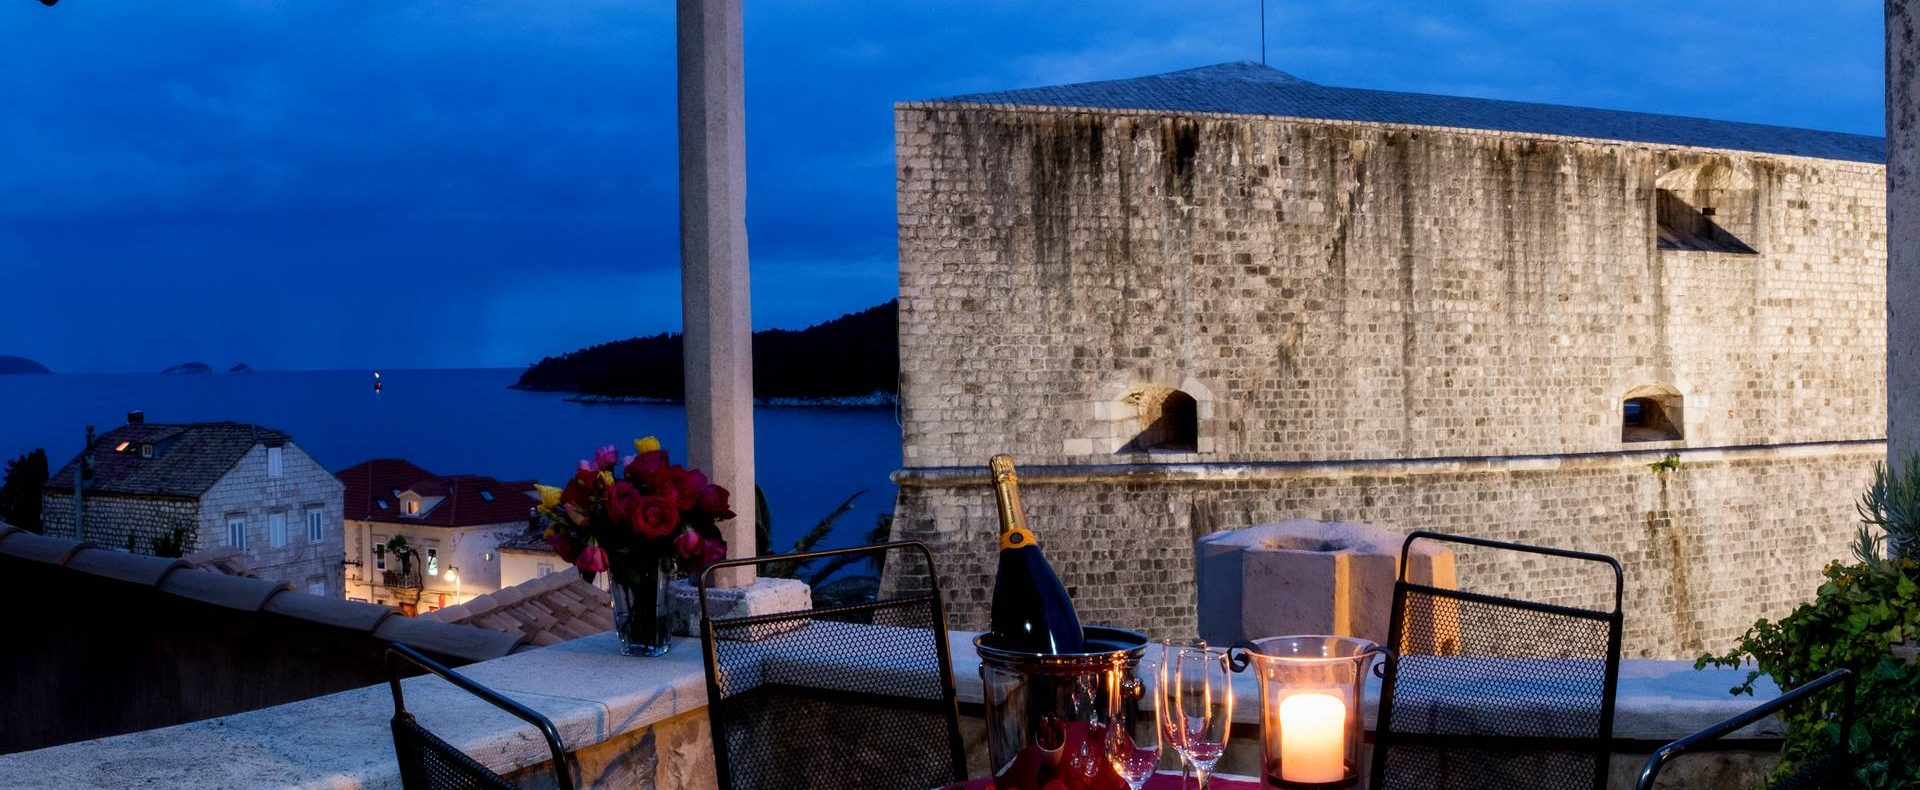 Dubrovnik Sightseeing Private Tour city walls